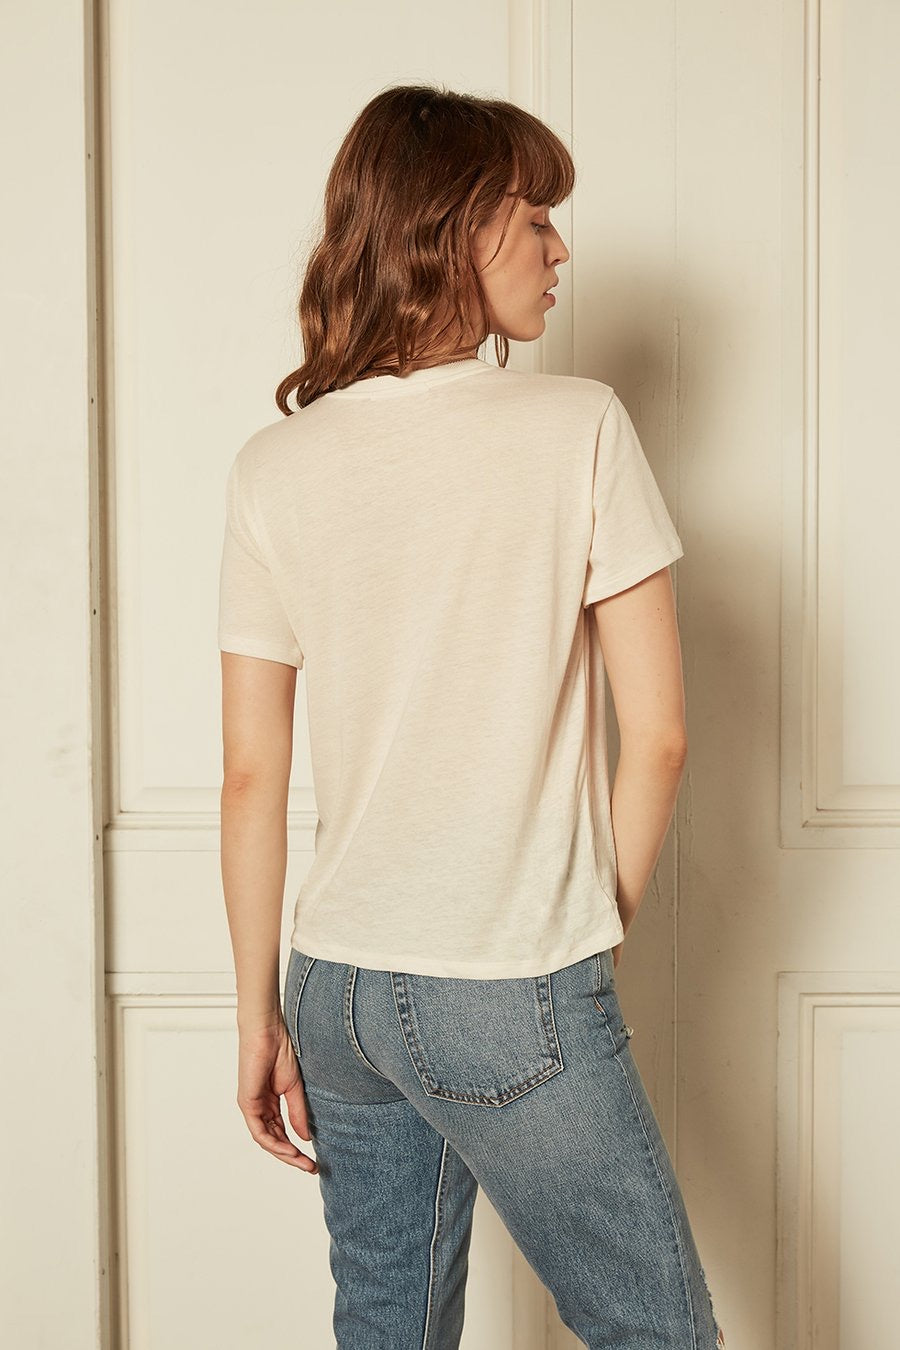 Off White Lennon Tee by Boyish Jeans